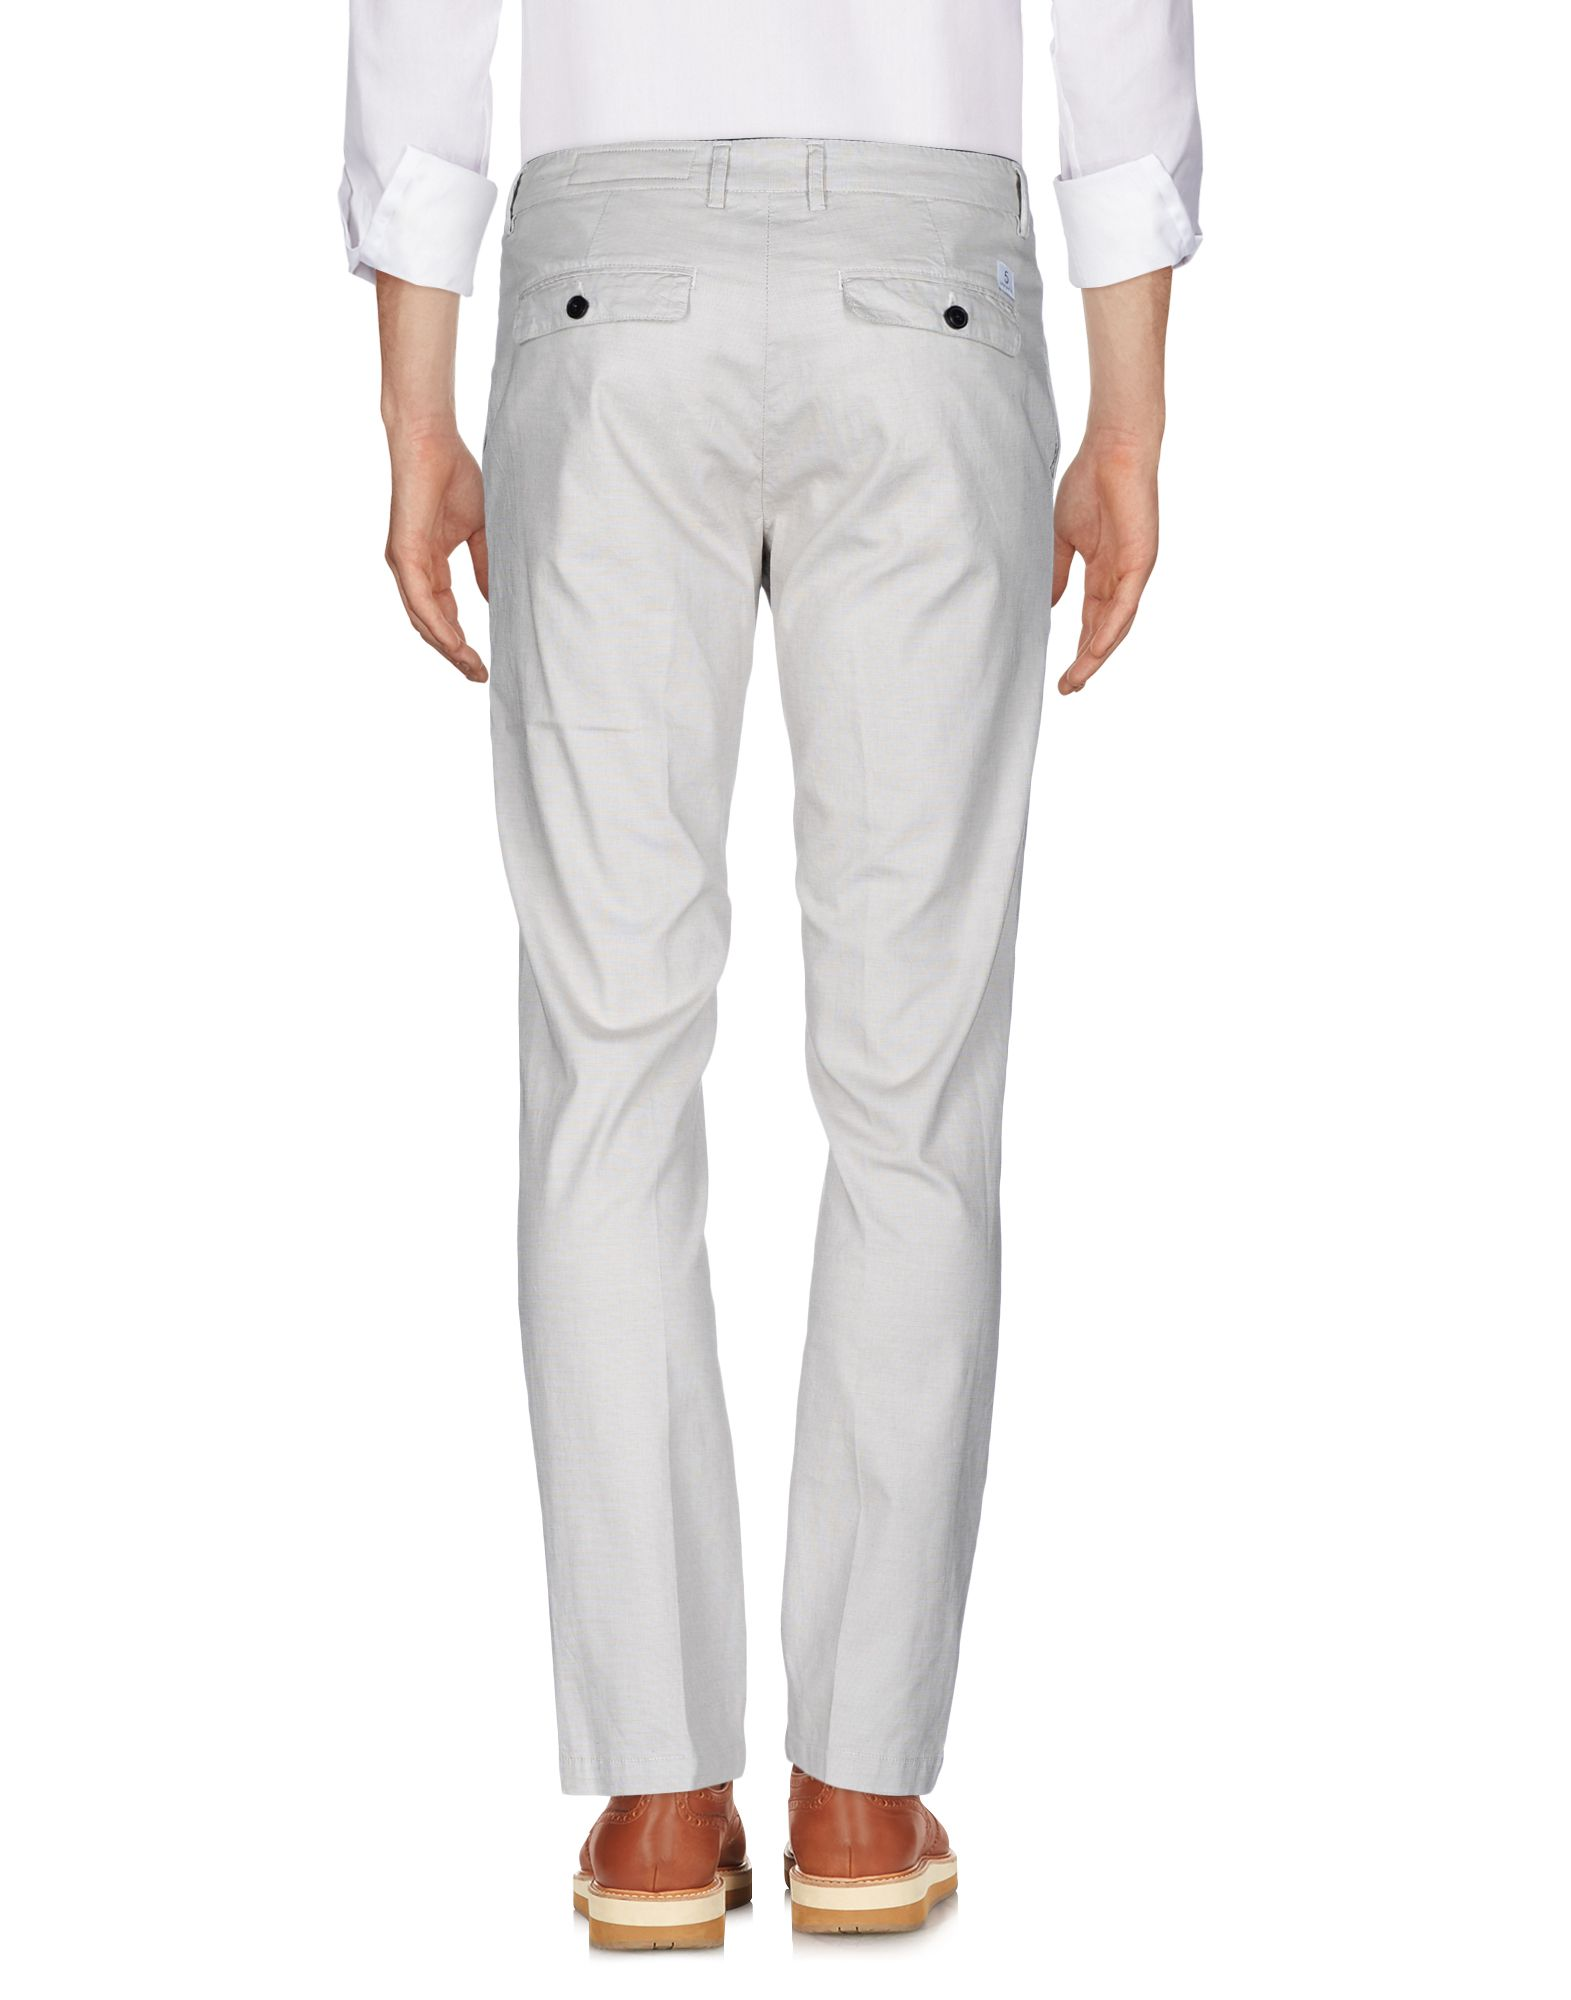 Chinos Department Department Chinos 5 Uomo - 13129652CH 5a2b51